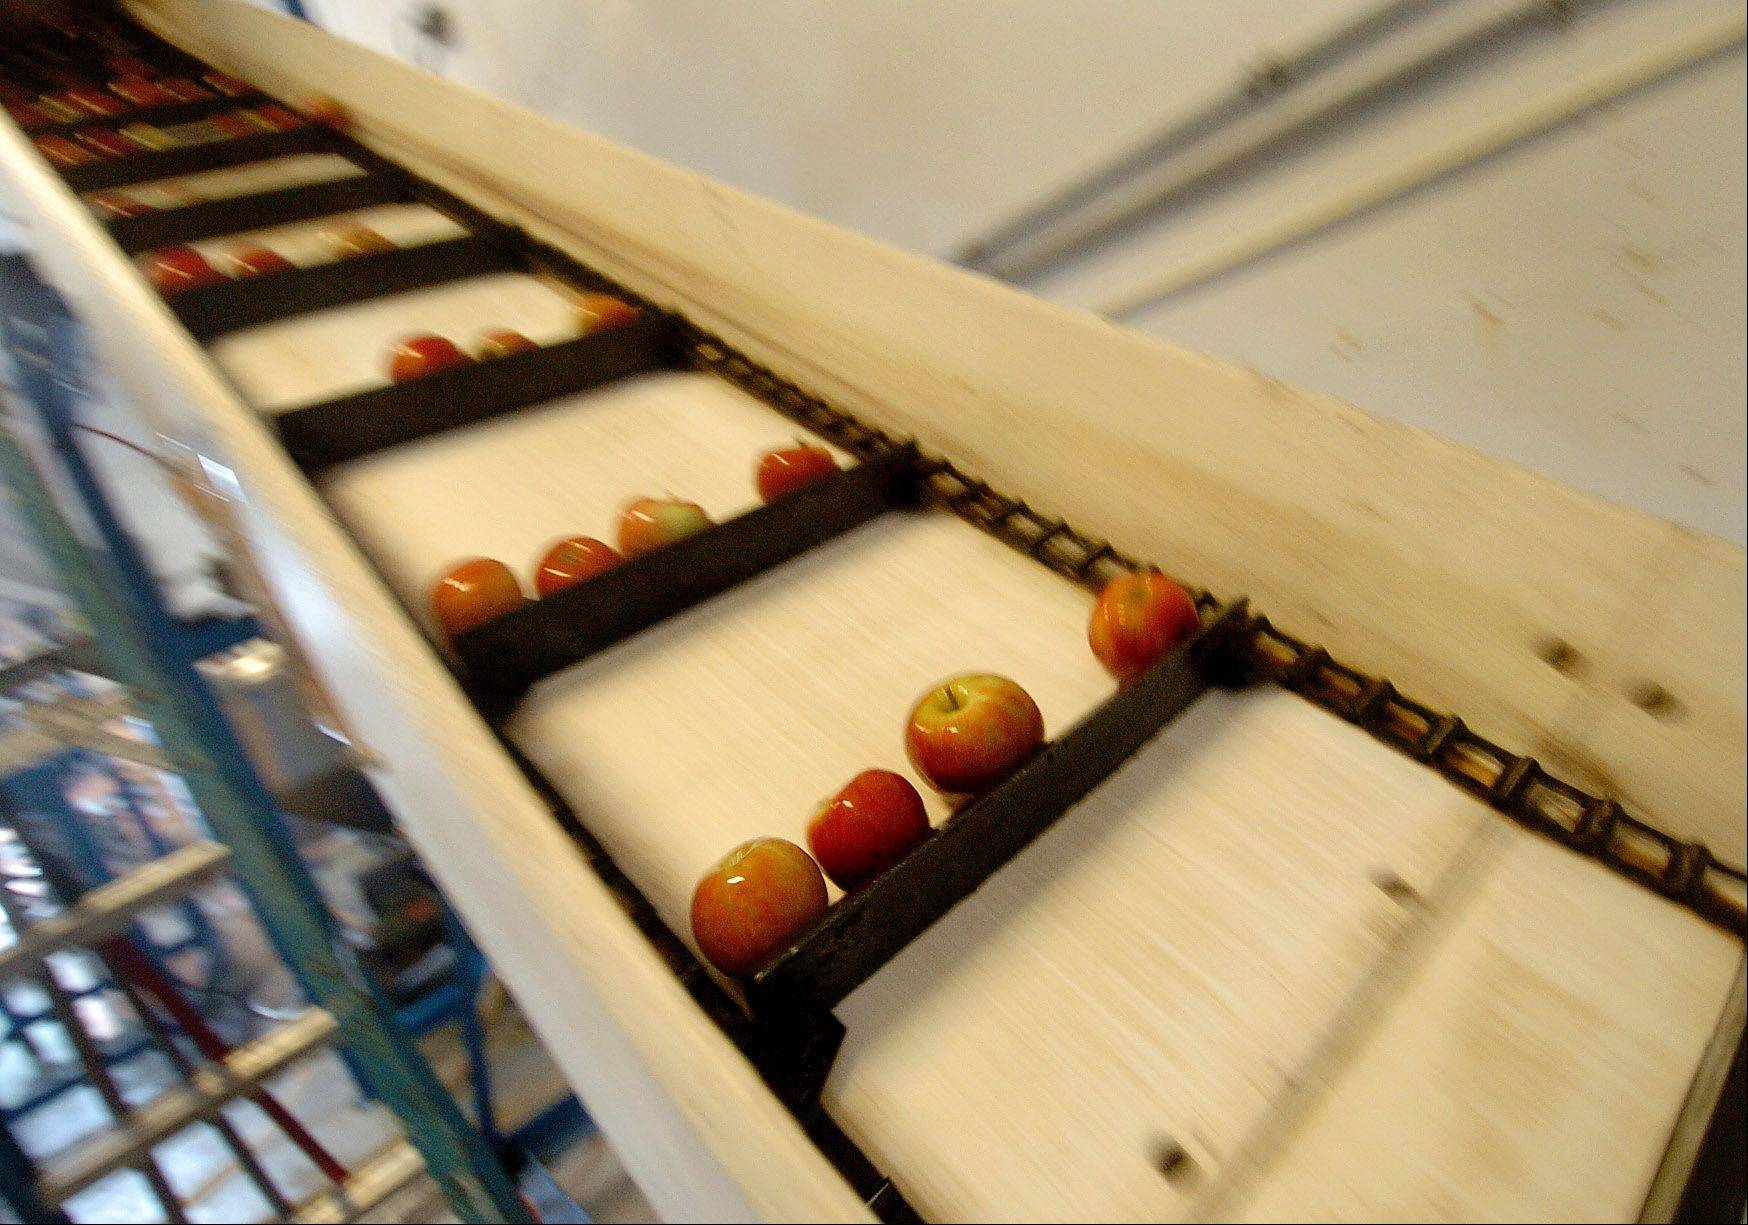 Apples travel up the conveyor into the grinder where the juice is extracted from the apples.